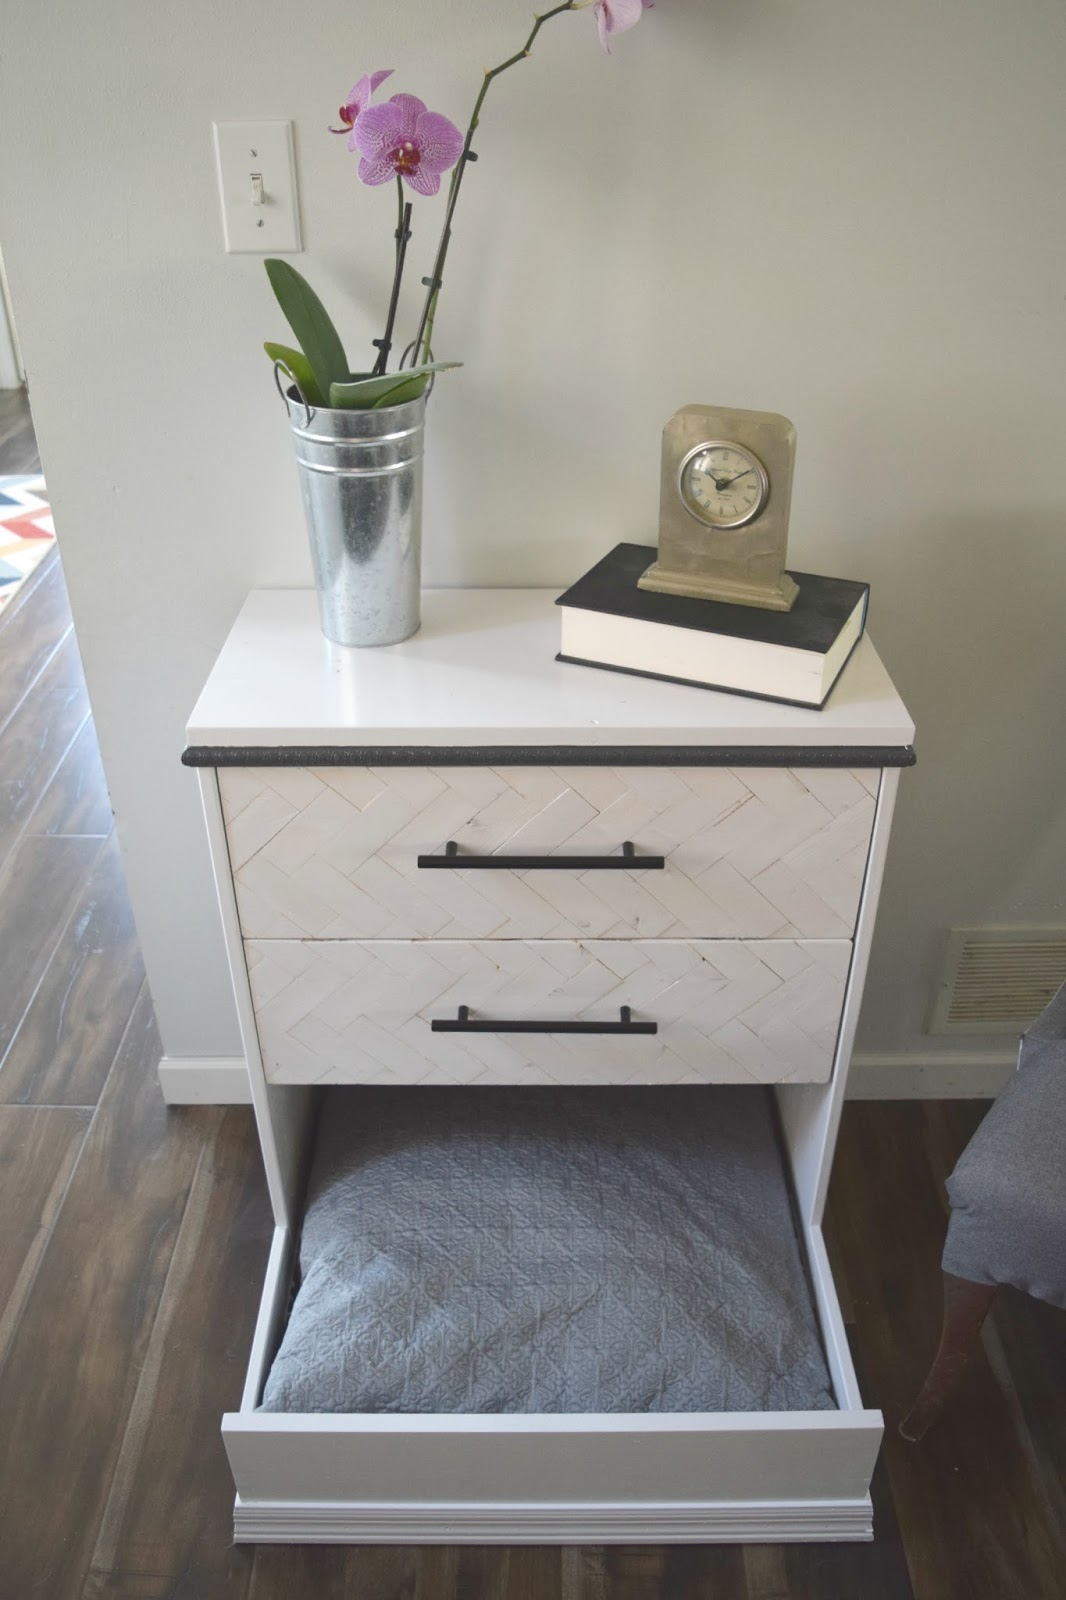 I Also Like That It Makes This Piece Look Cohesive With The Bed And Dresser Meshing Well